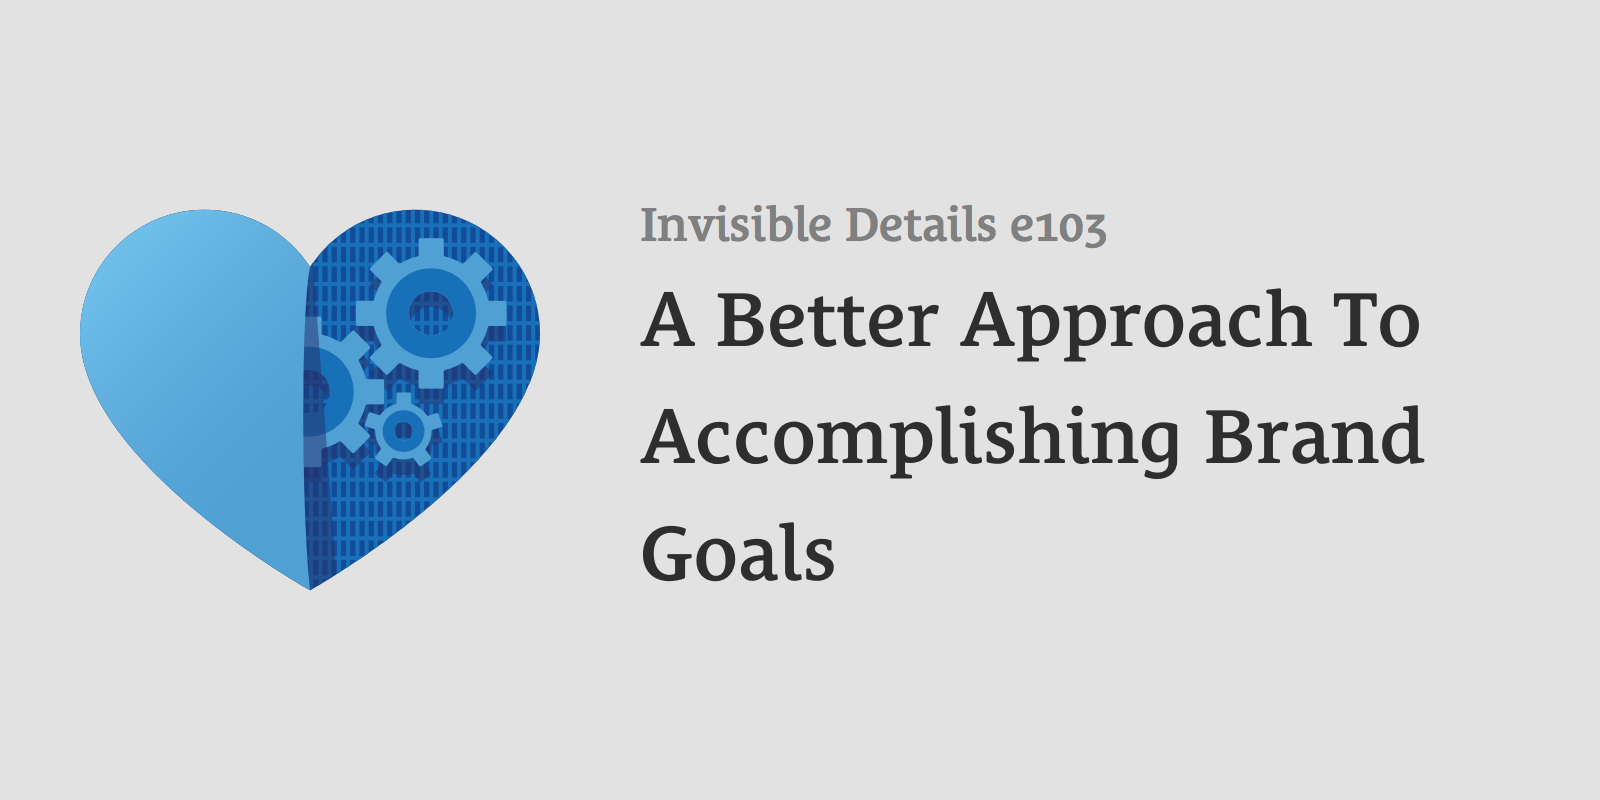 A Better Approach To Accomplishing Brand Goals